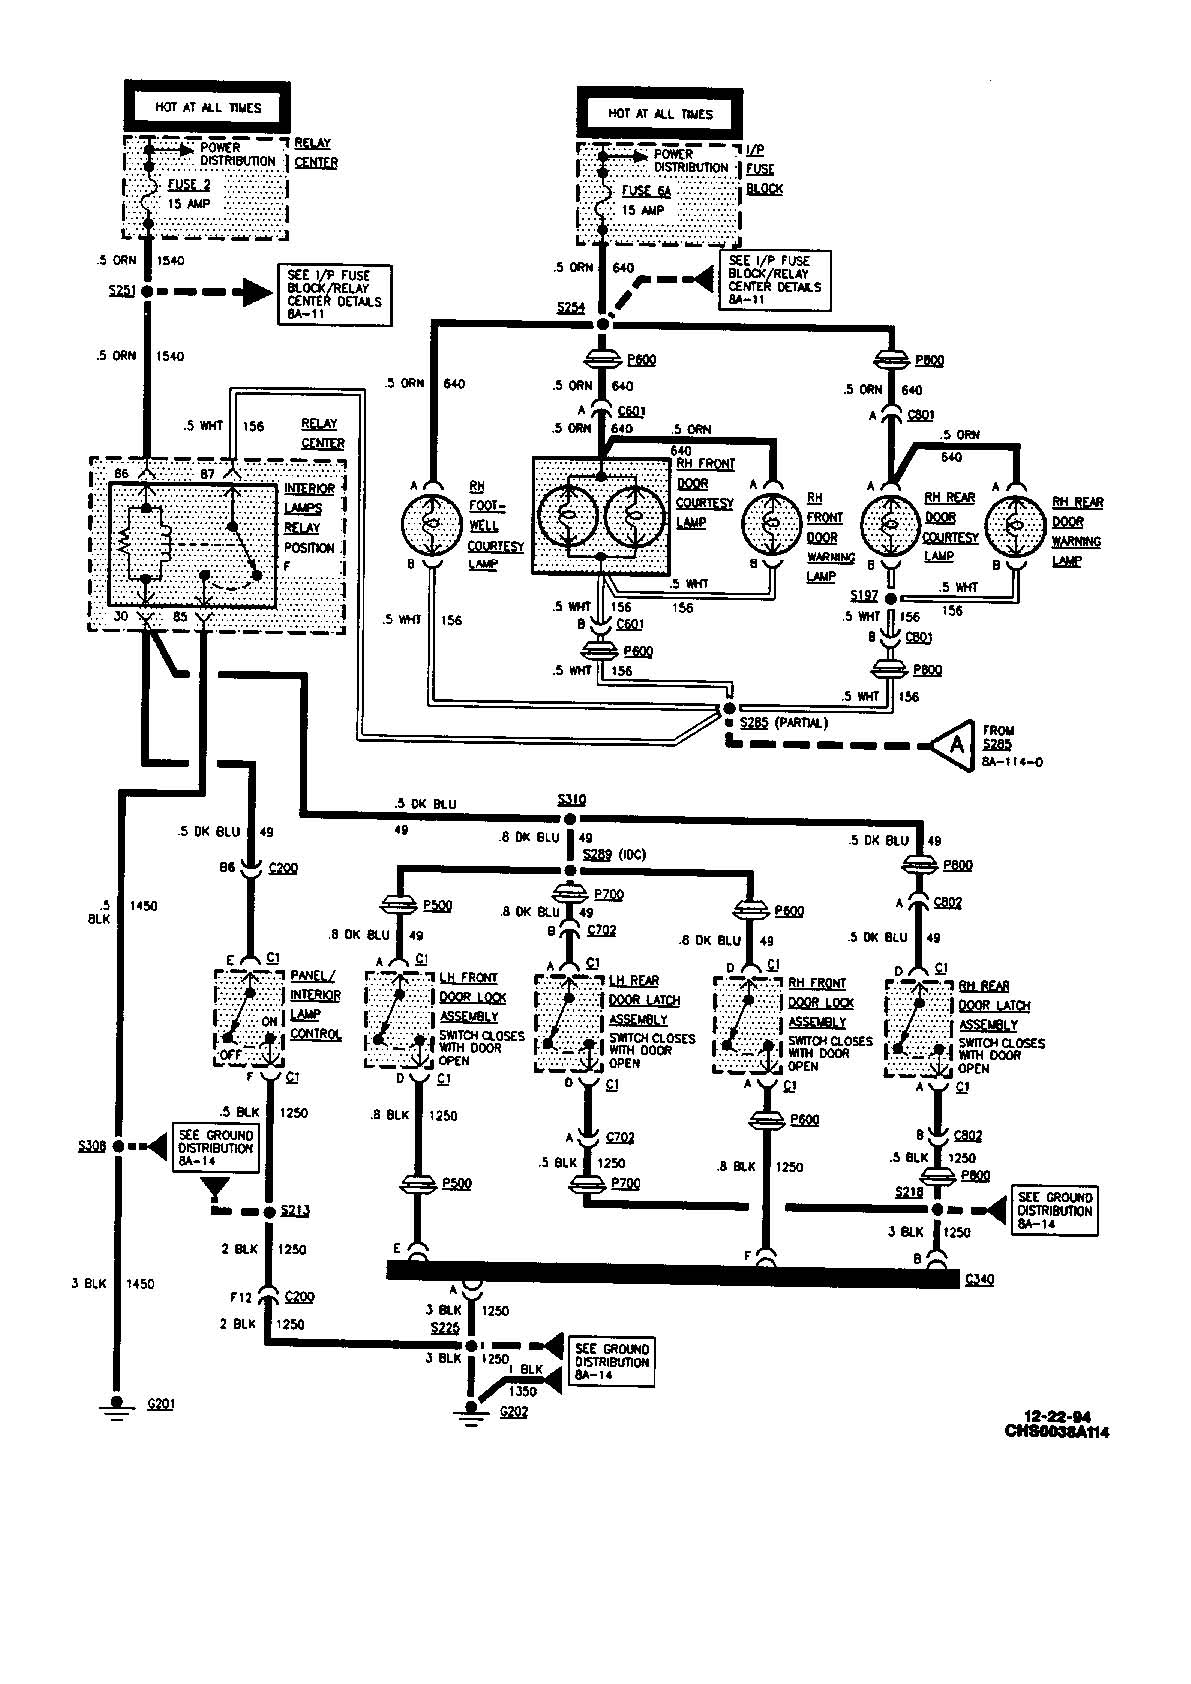 KW_9609] 79 Buick Lesabre Wiring Diagram Schematic Wiring DiagramDadea Iness Phon Tran Ntnes Tool Ifica Inst Simij Chor Mohammedshrine  Librar Wiring 101